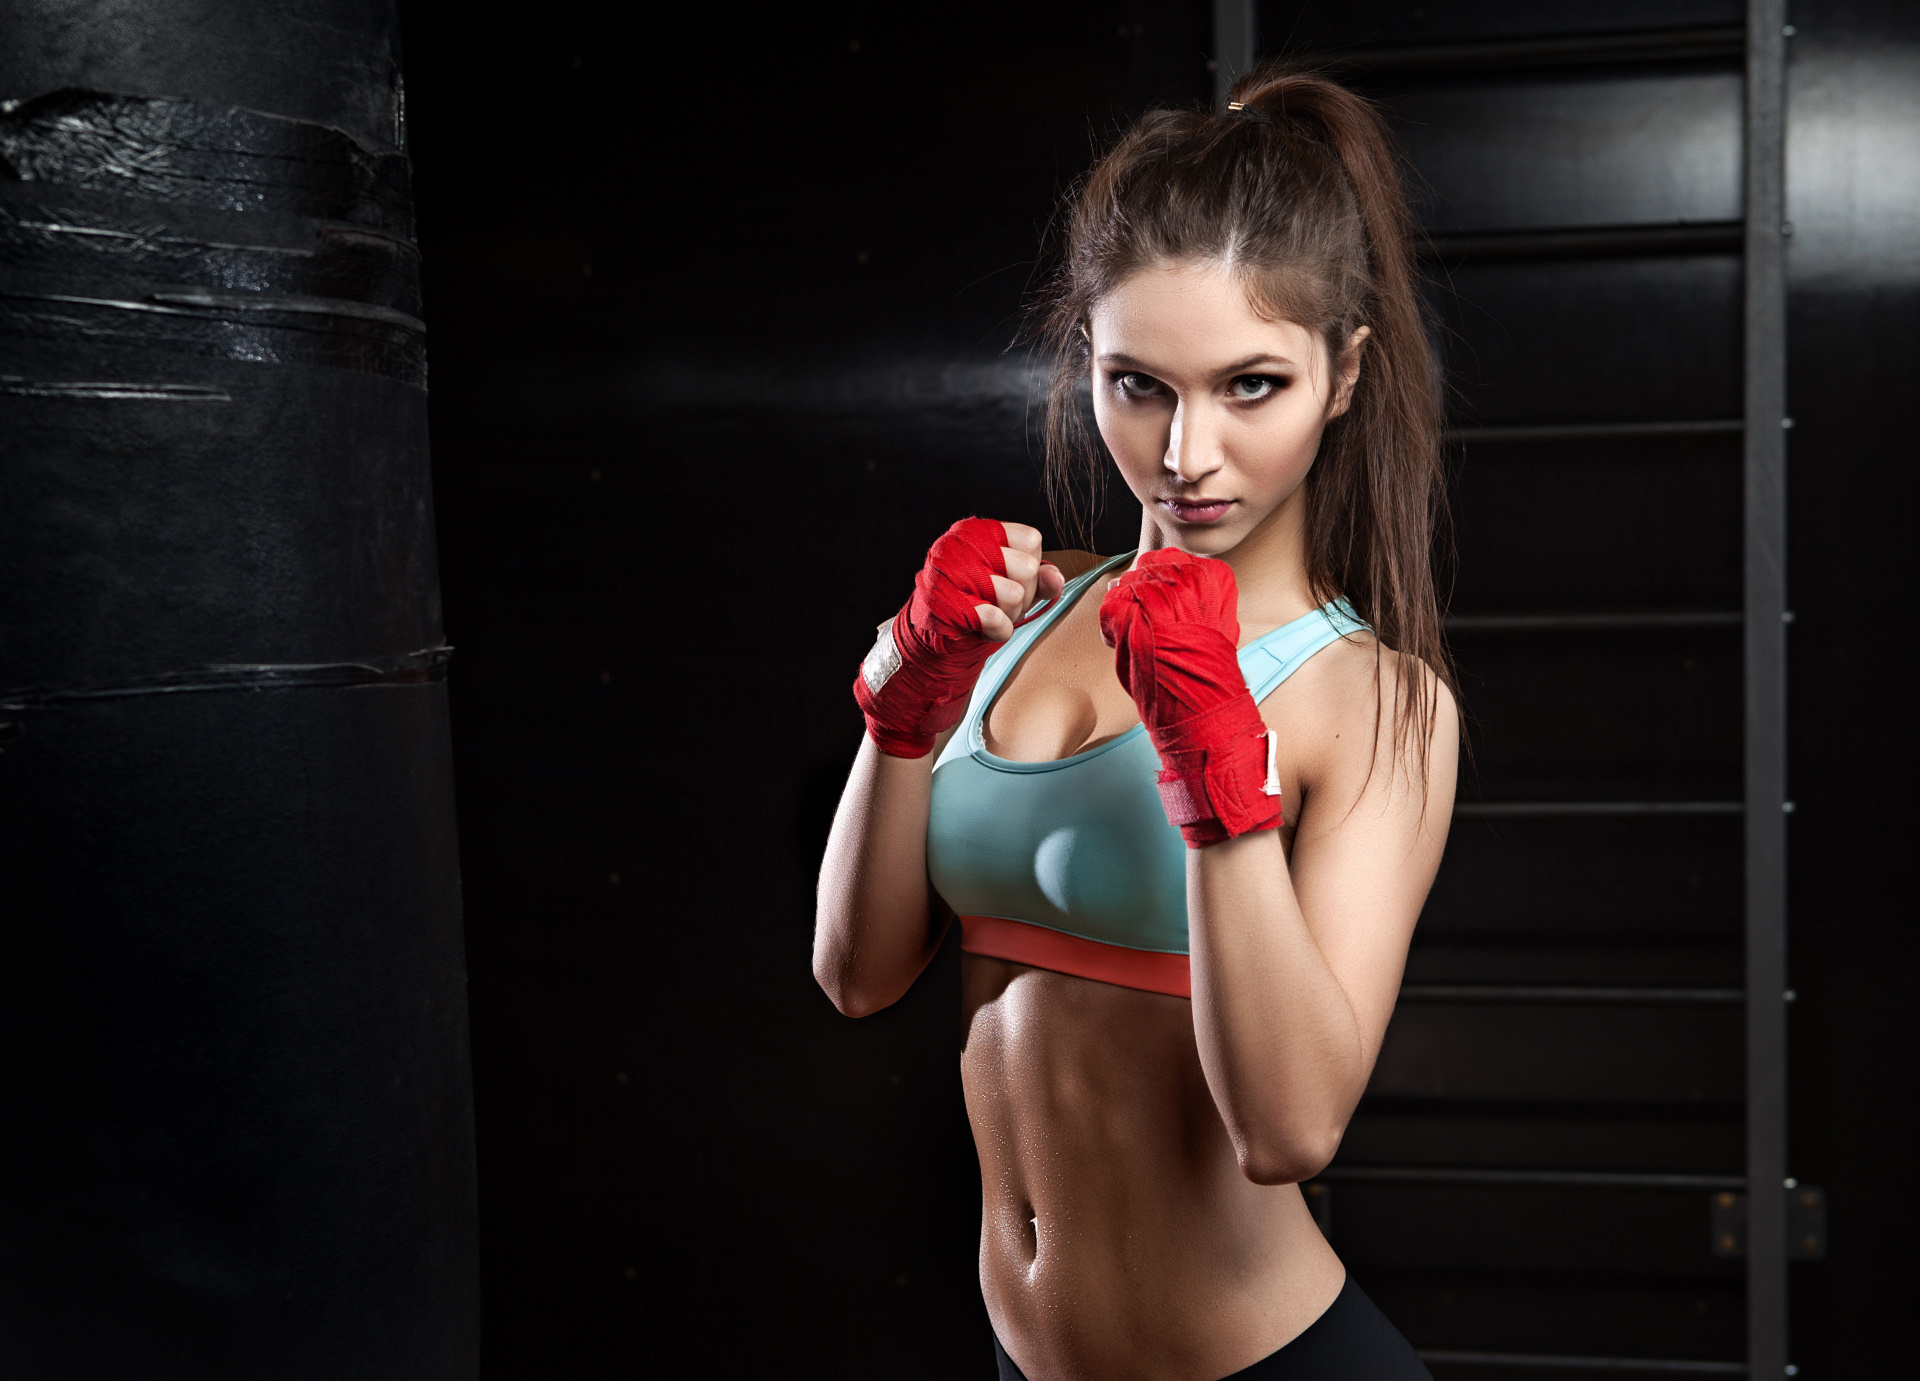 new concept 85fe7 cd940 Cute Fitness Model HD Wallpaper | Background Image ...